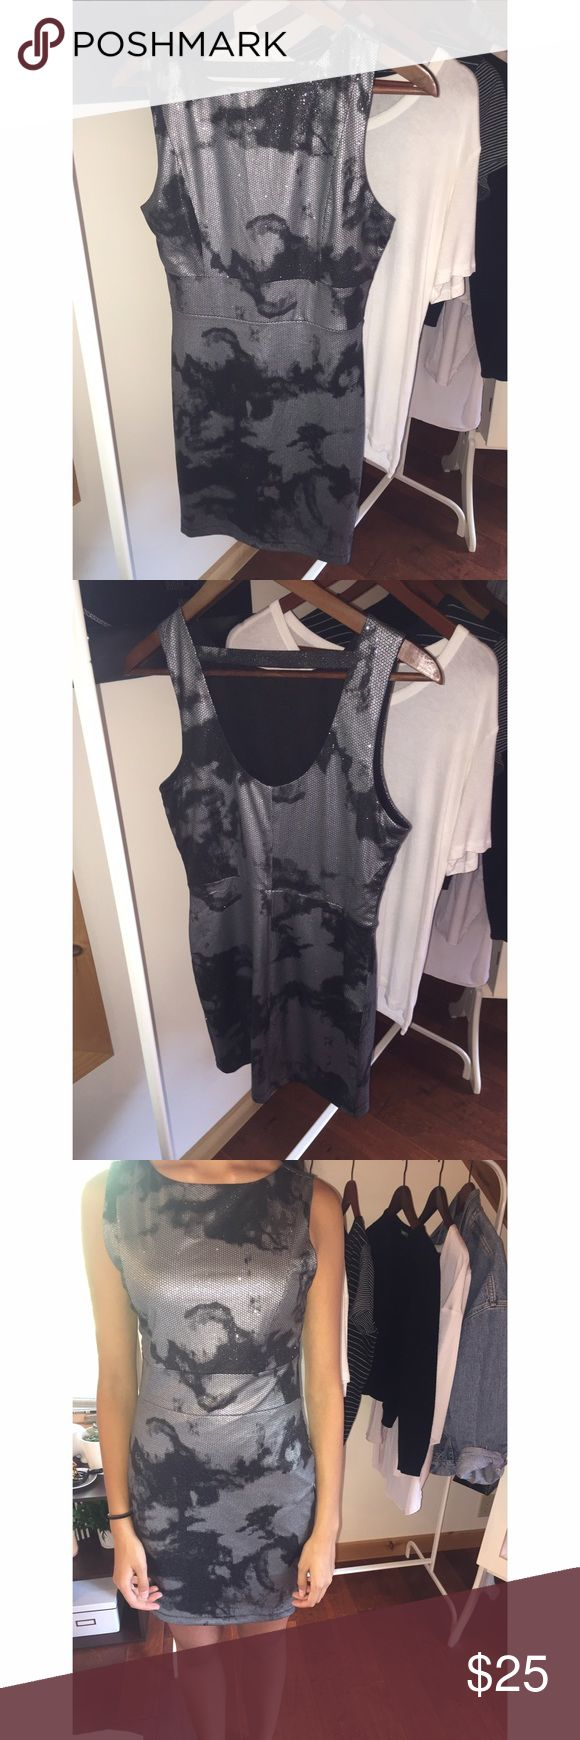 Marble smoky silver and black dress Cute going out dress. Sparkly silver and black pattern. Scoop back. Forever 21 Dresses Mini